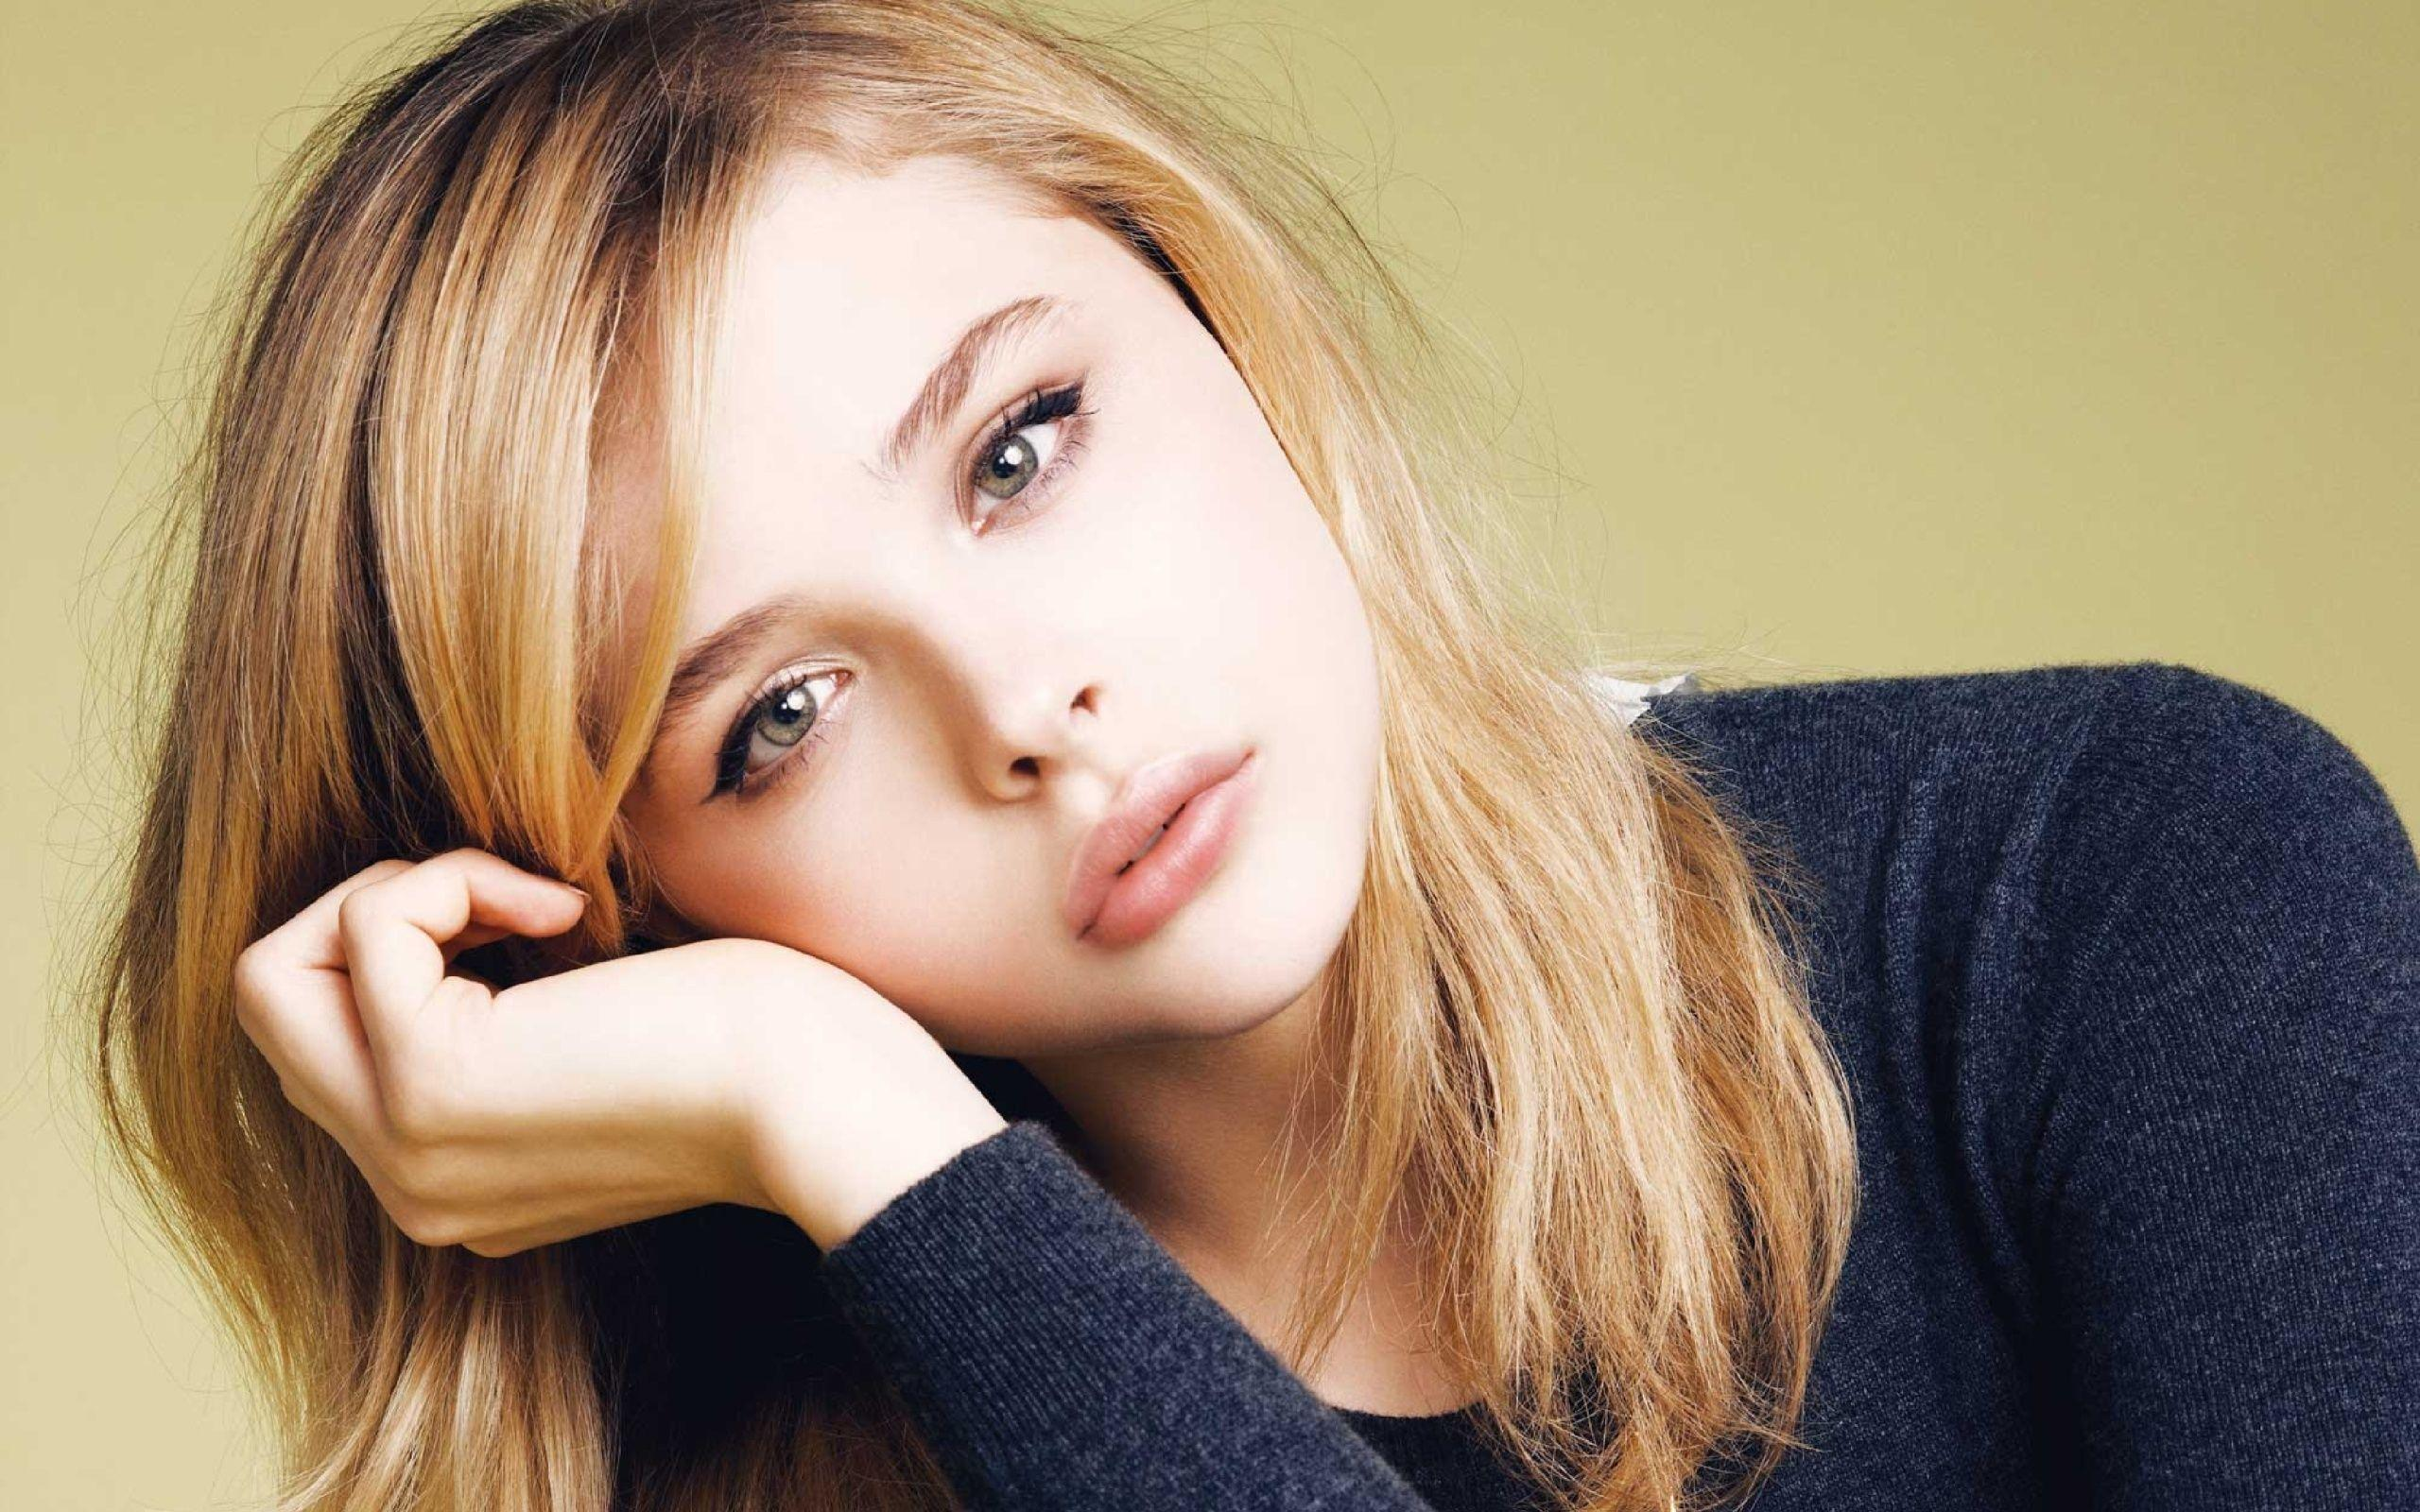 Chloe Grace Moretz Face Wallpaper Backgrounds 63214 2560x1600 px